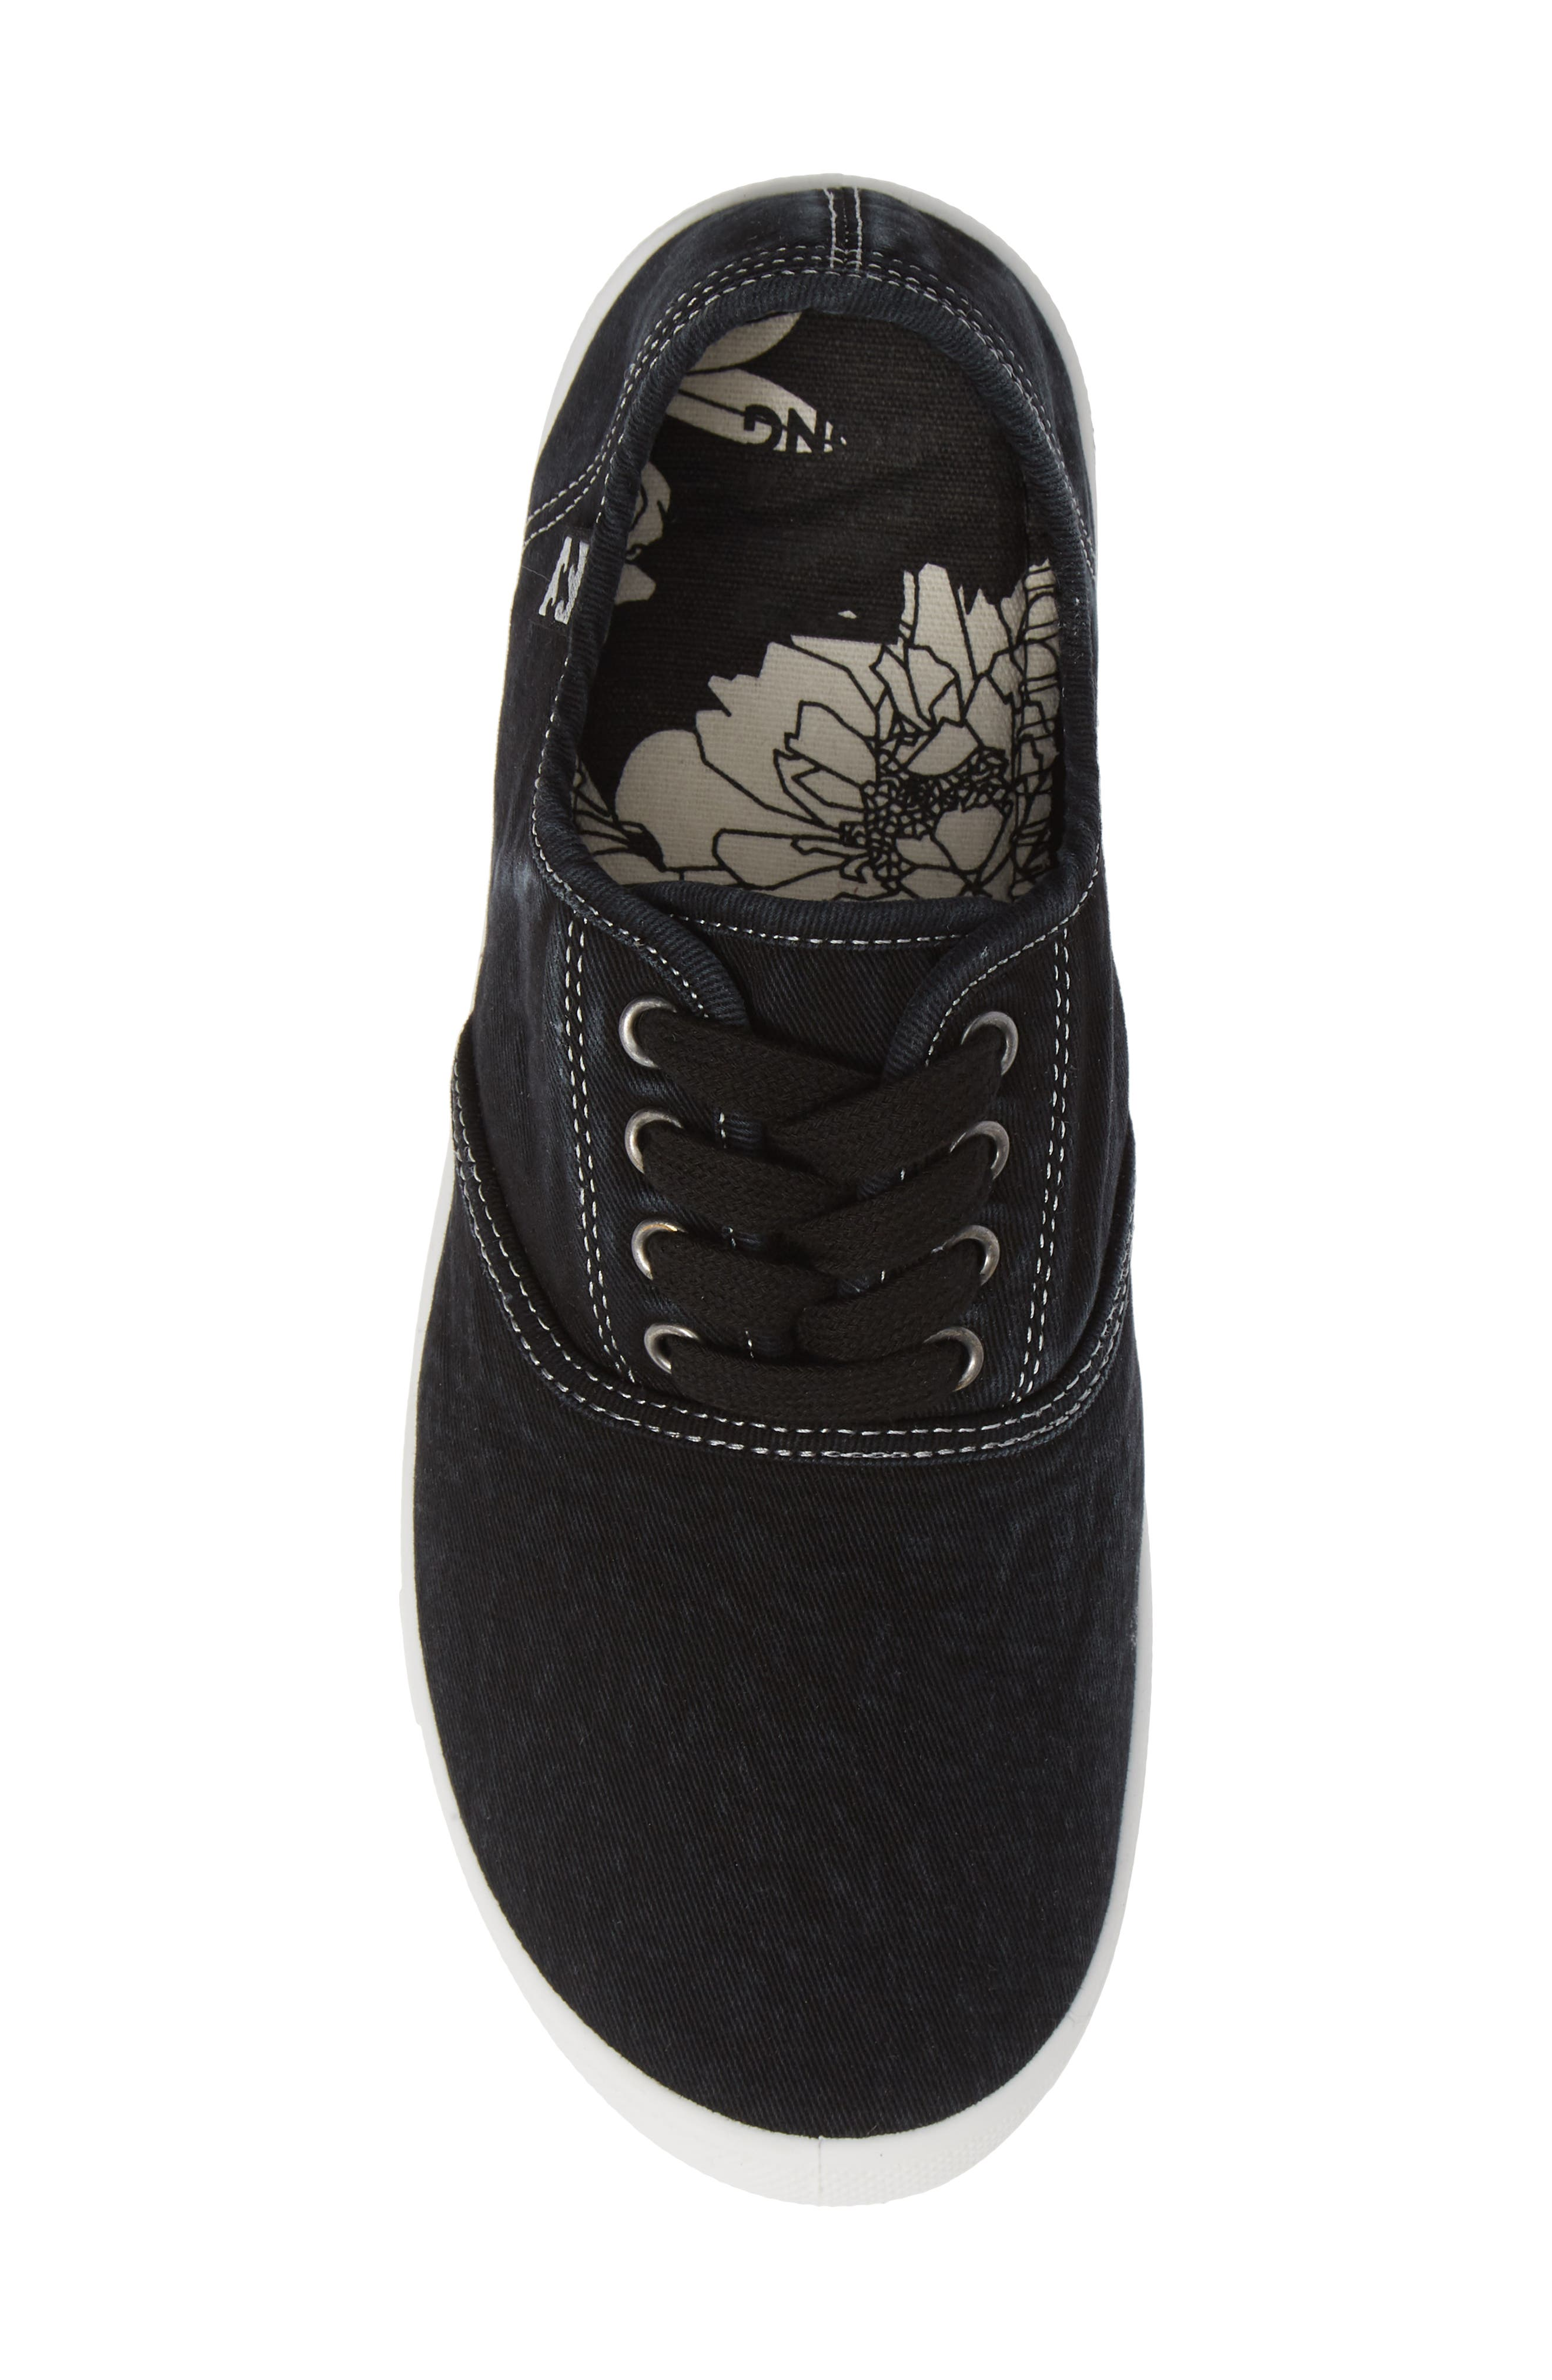 Addy Sneaker,                             Alternate thumbnail 6, color,                             Off Black